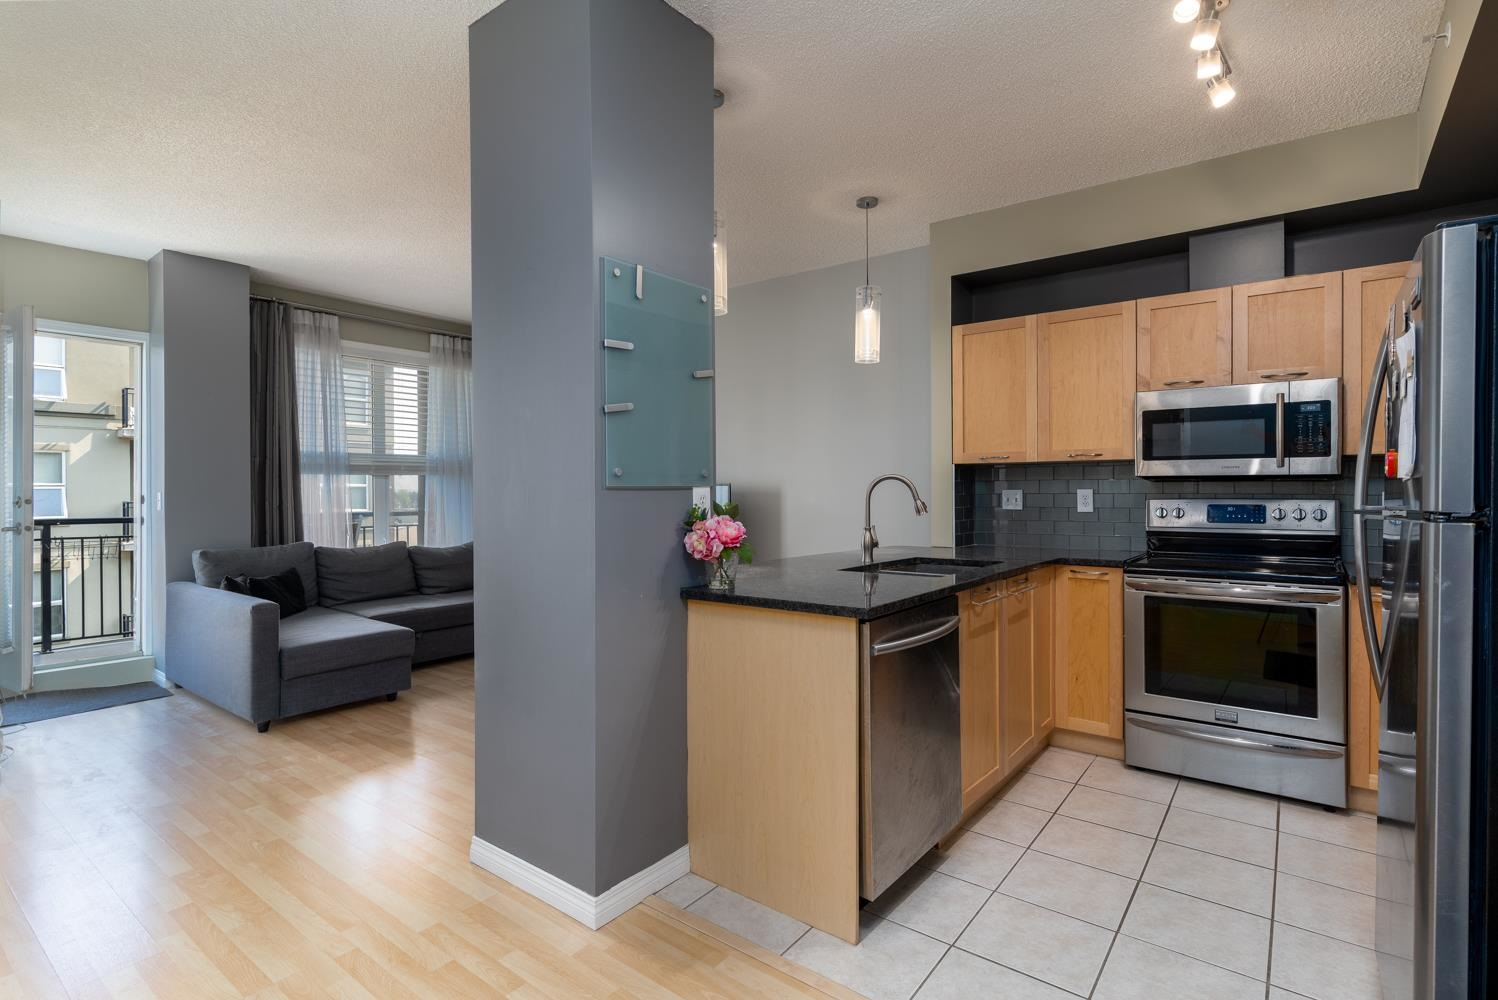 STEPS away from Clareview LRT station. Convenient location close to shopping, public transportation, Anthony Henday access. 1Bedroom with 2nd door to 4pc bathroom. In suite Laundry. 5th Floor Unit with balcony. Stainless steal appliances and granite counter tops. CONCRETE construction for less noise transfer. UNDERGROUND heated parking with 2 STORGAGE units.